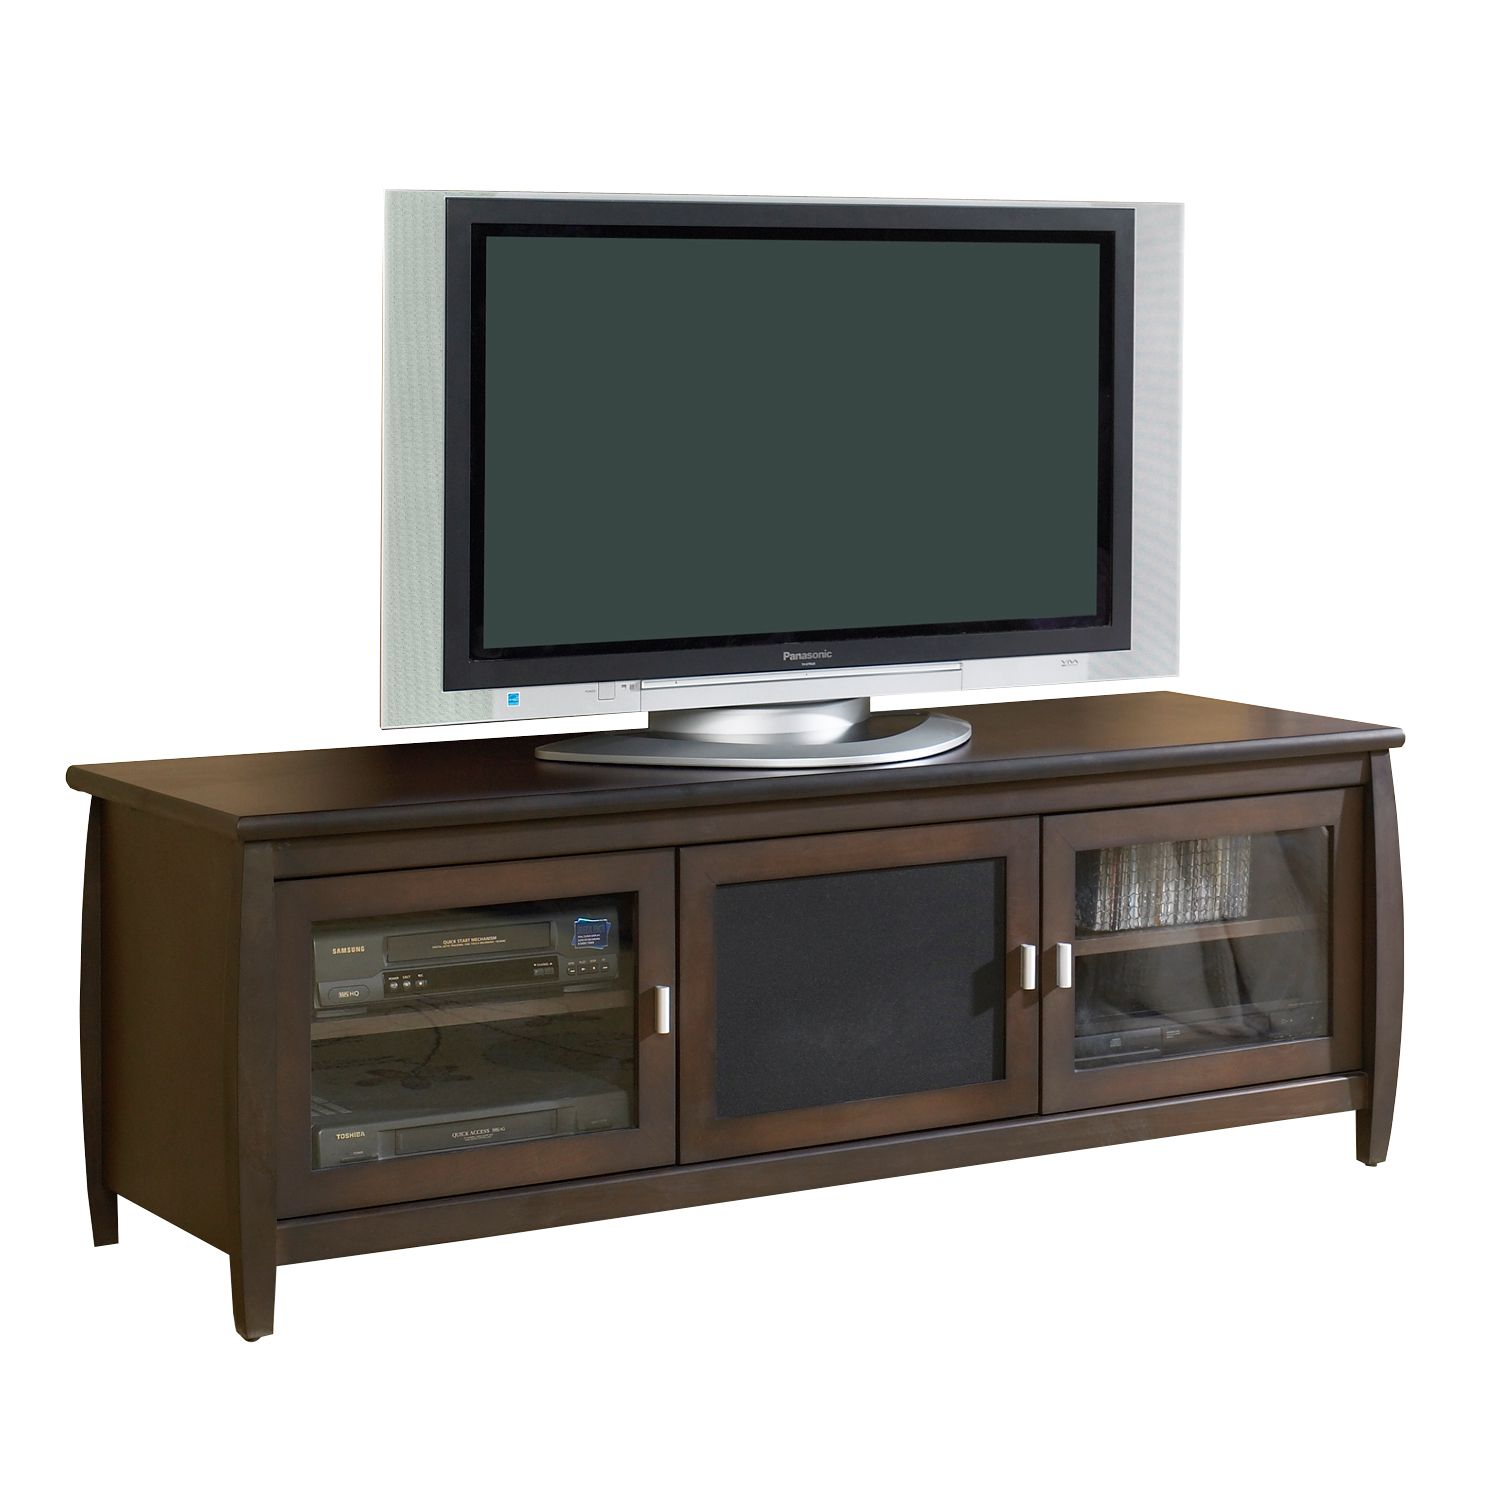 Tech Craft Tv Stand With Cabinet - Wood Home Furniture Game Room & Media